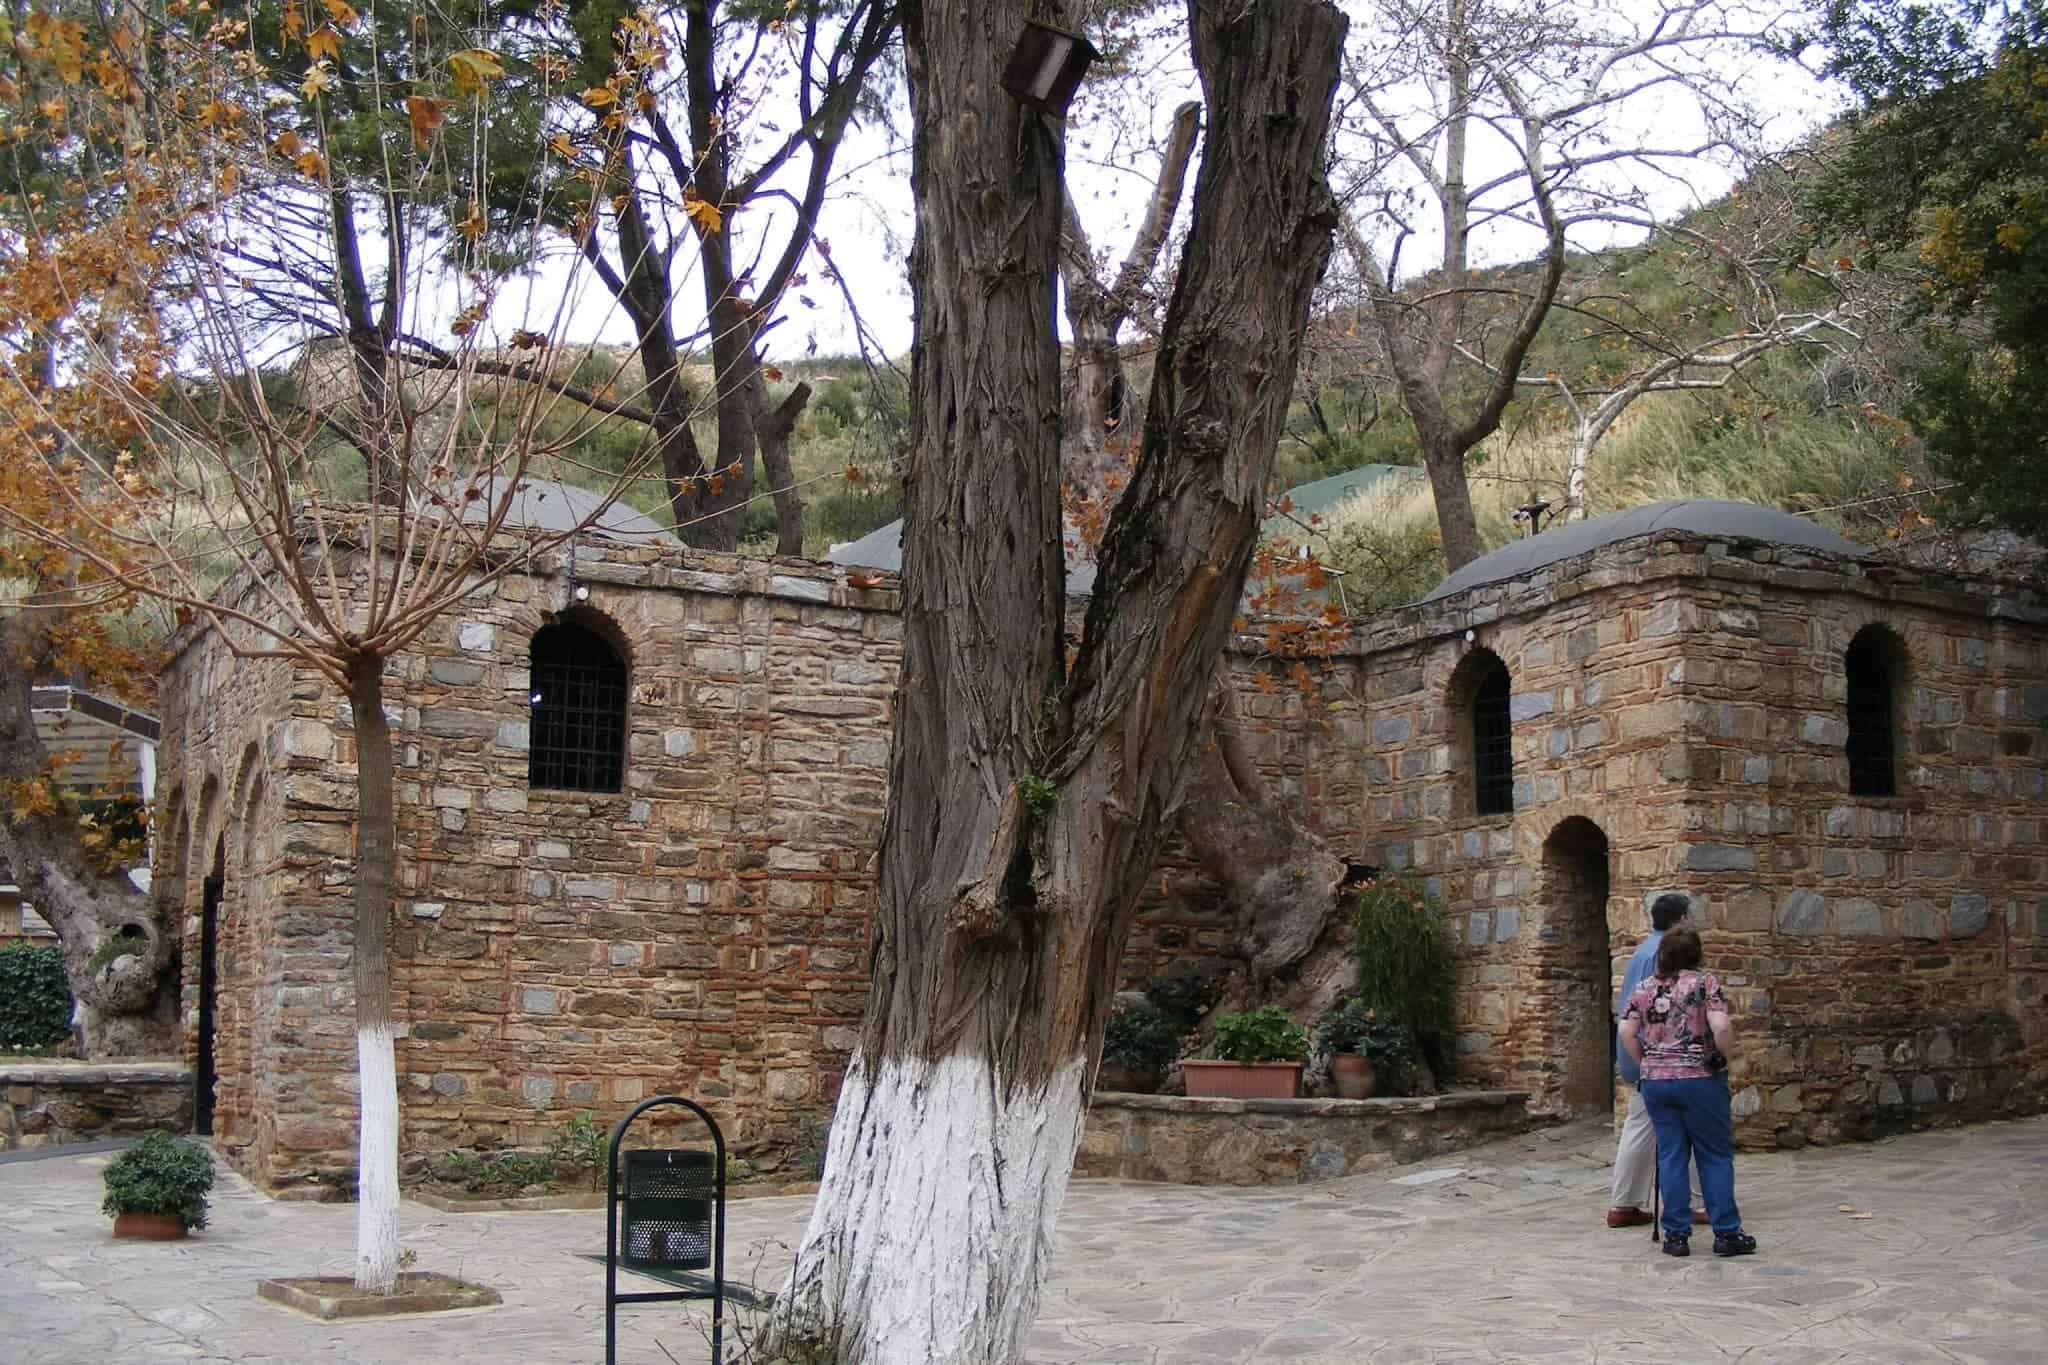 Visiting the House of the Virgin Mary in Ephesus Turkey